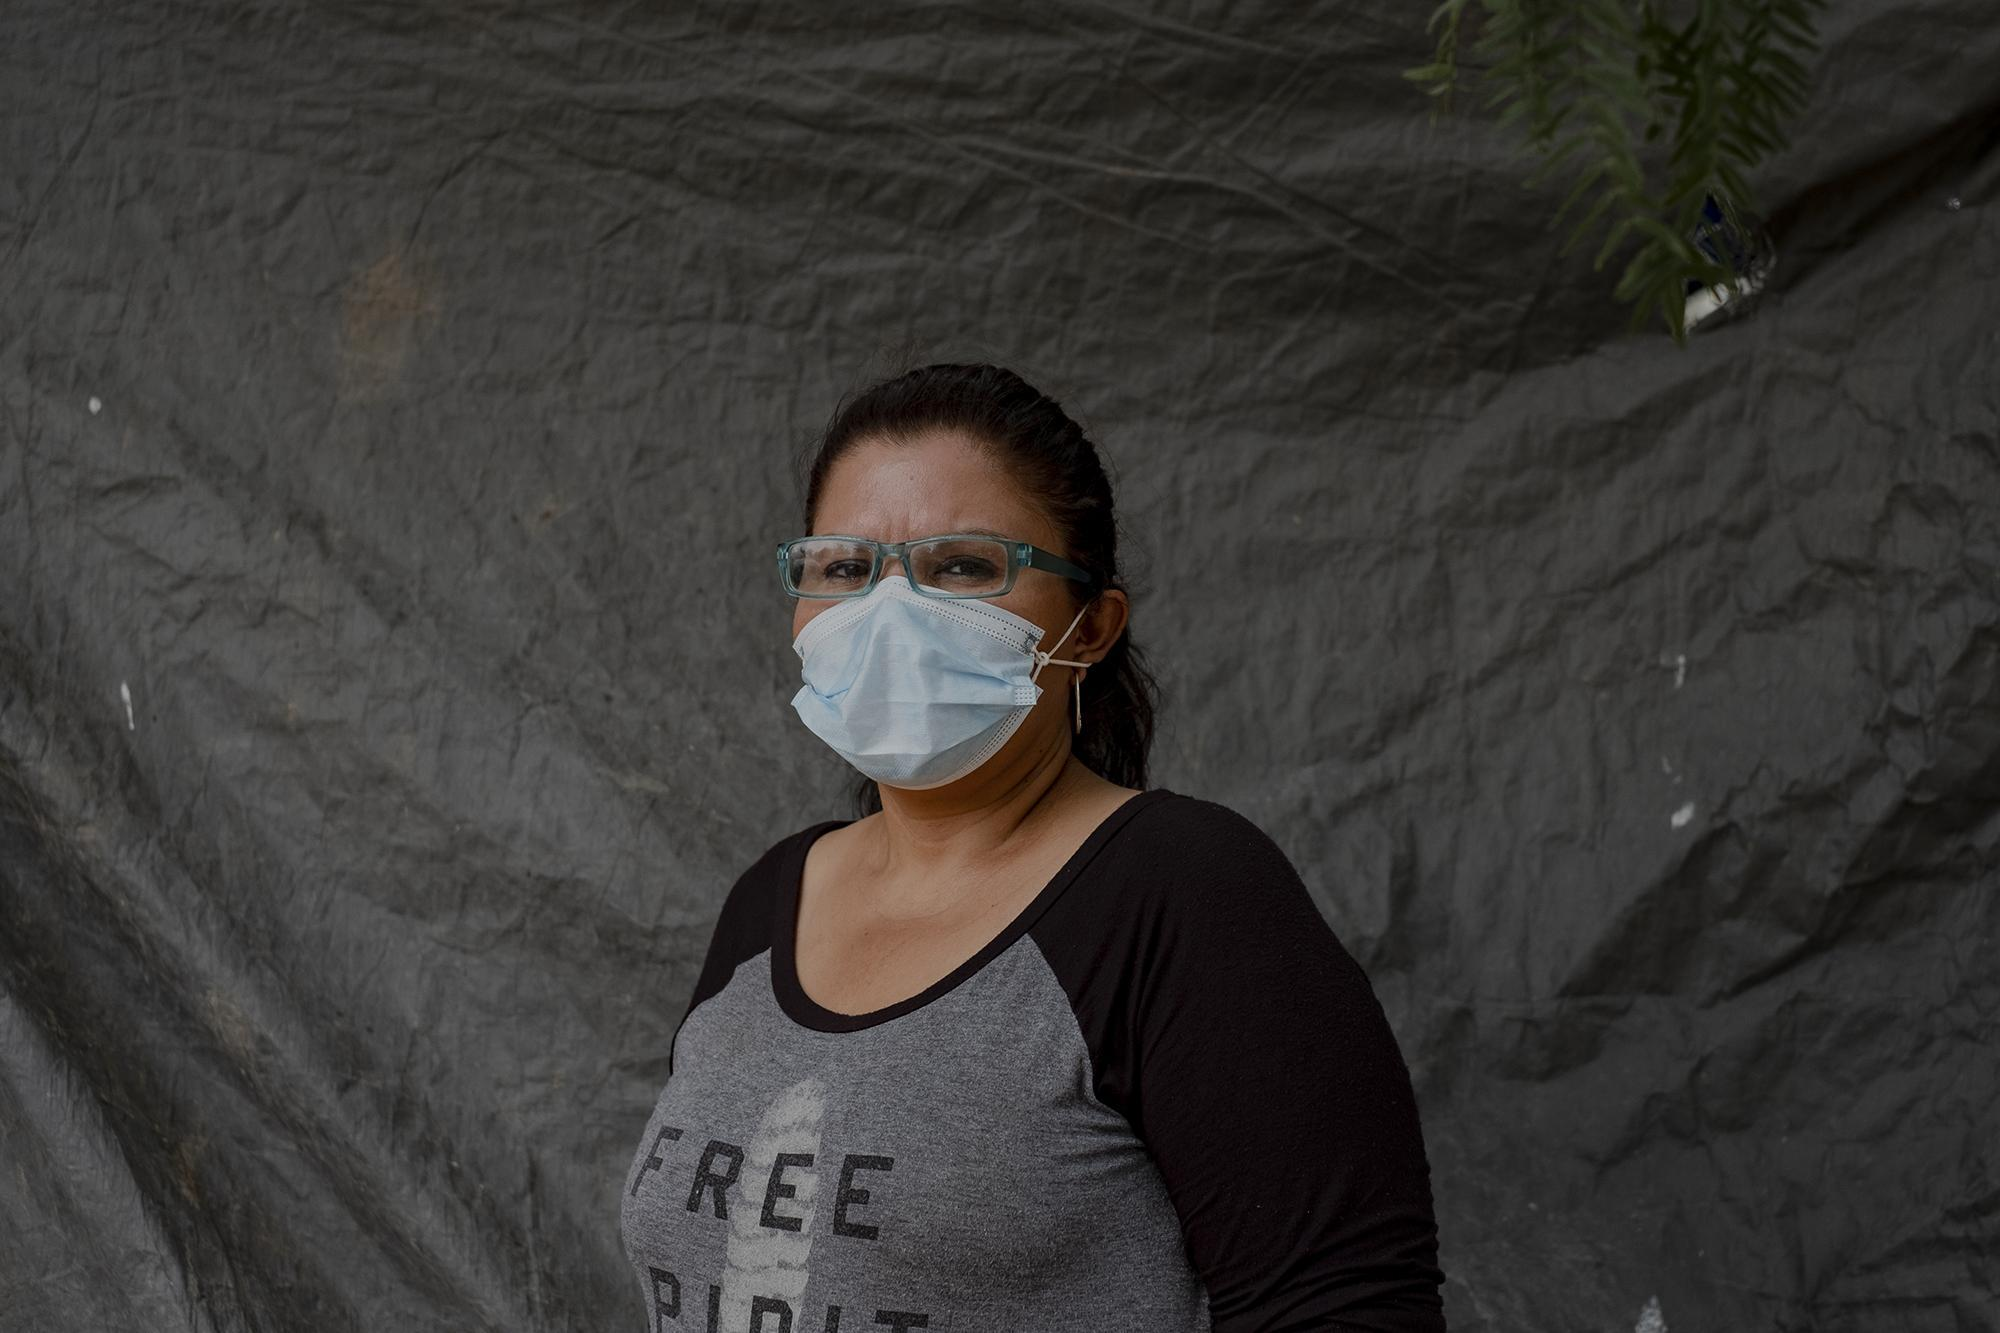 Perla Vargas, a Nicaraguan who is fleeing from Daniel Ortega's regime. She lives among a cluster of shacks in a tent with her family. She is hopeful that the United States will grant her asylum, as she says she has evidence supporting her case and a very dedicated lawyer. She is also in charge of the camp pharmacy. Photo from El Faro: Fred Ramos.